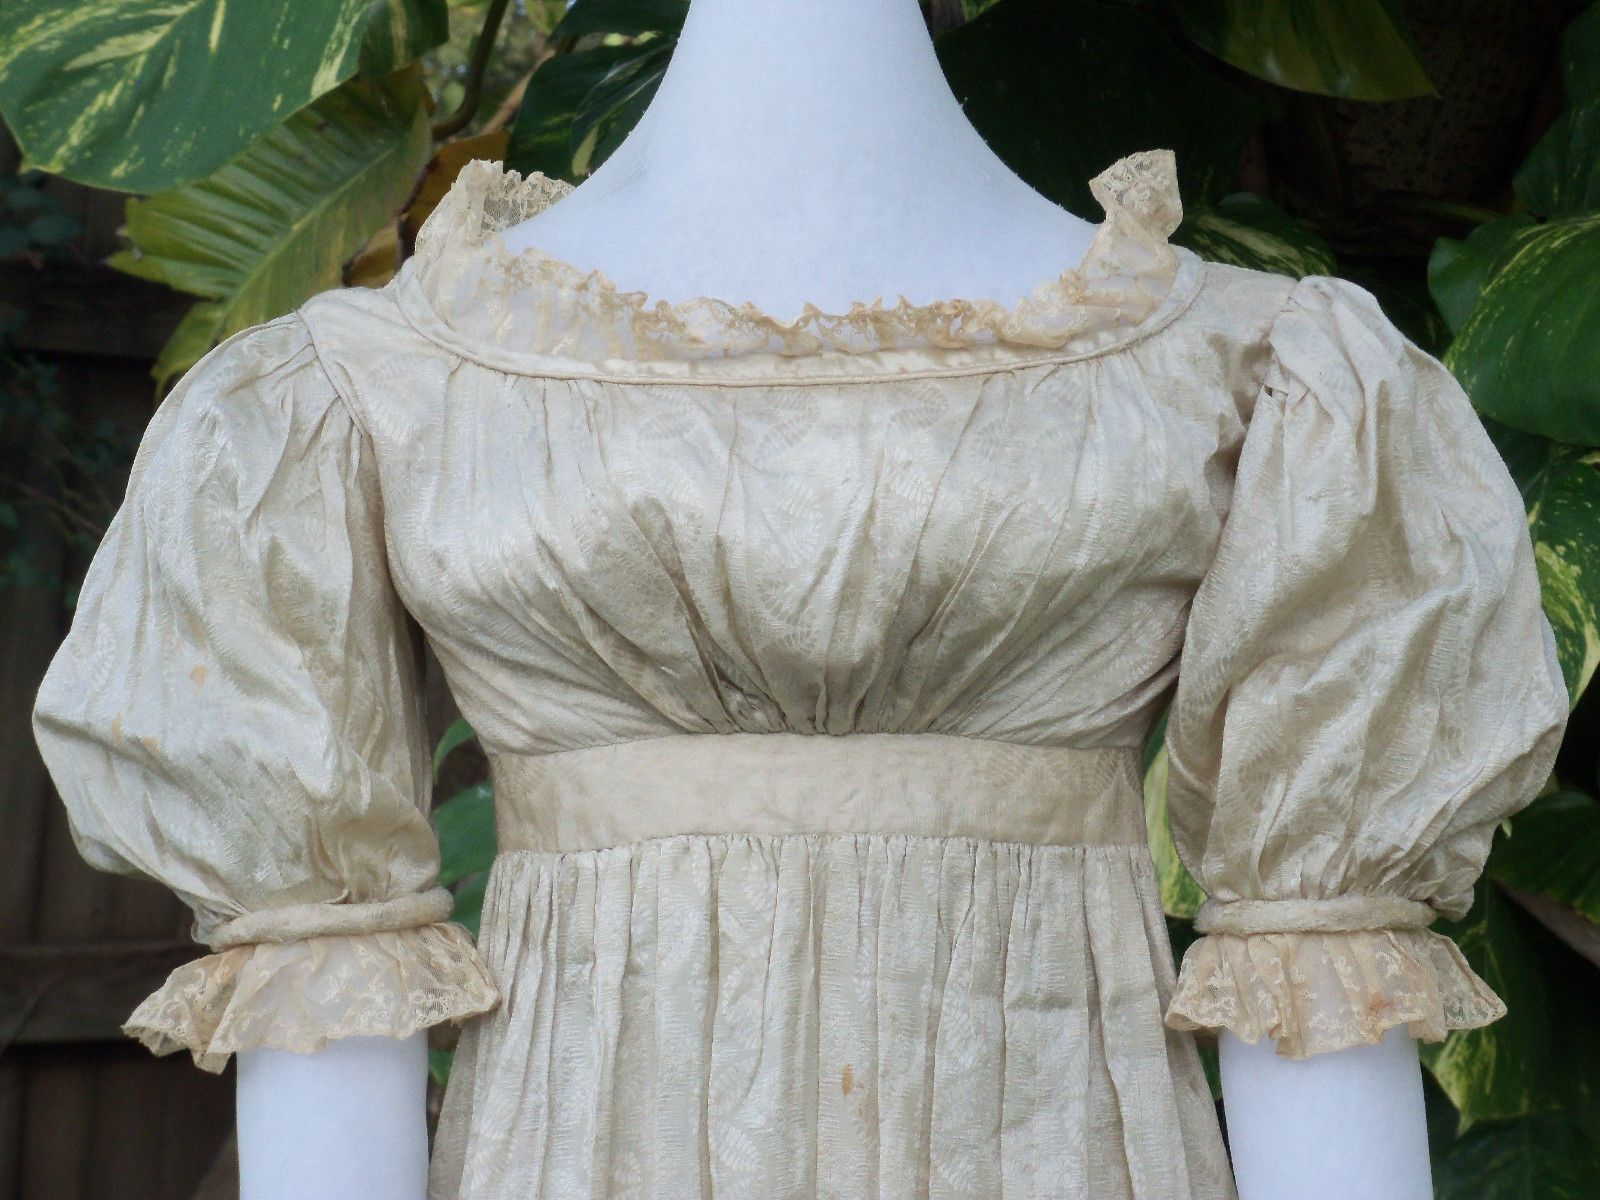 Original empire or georgian ball gown c free shipping today